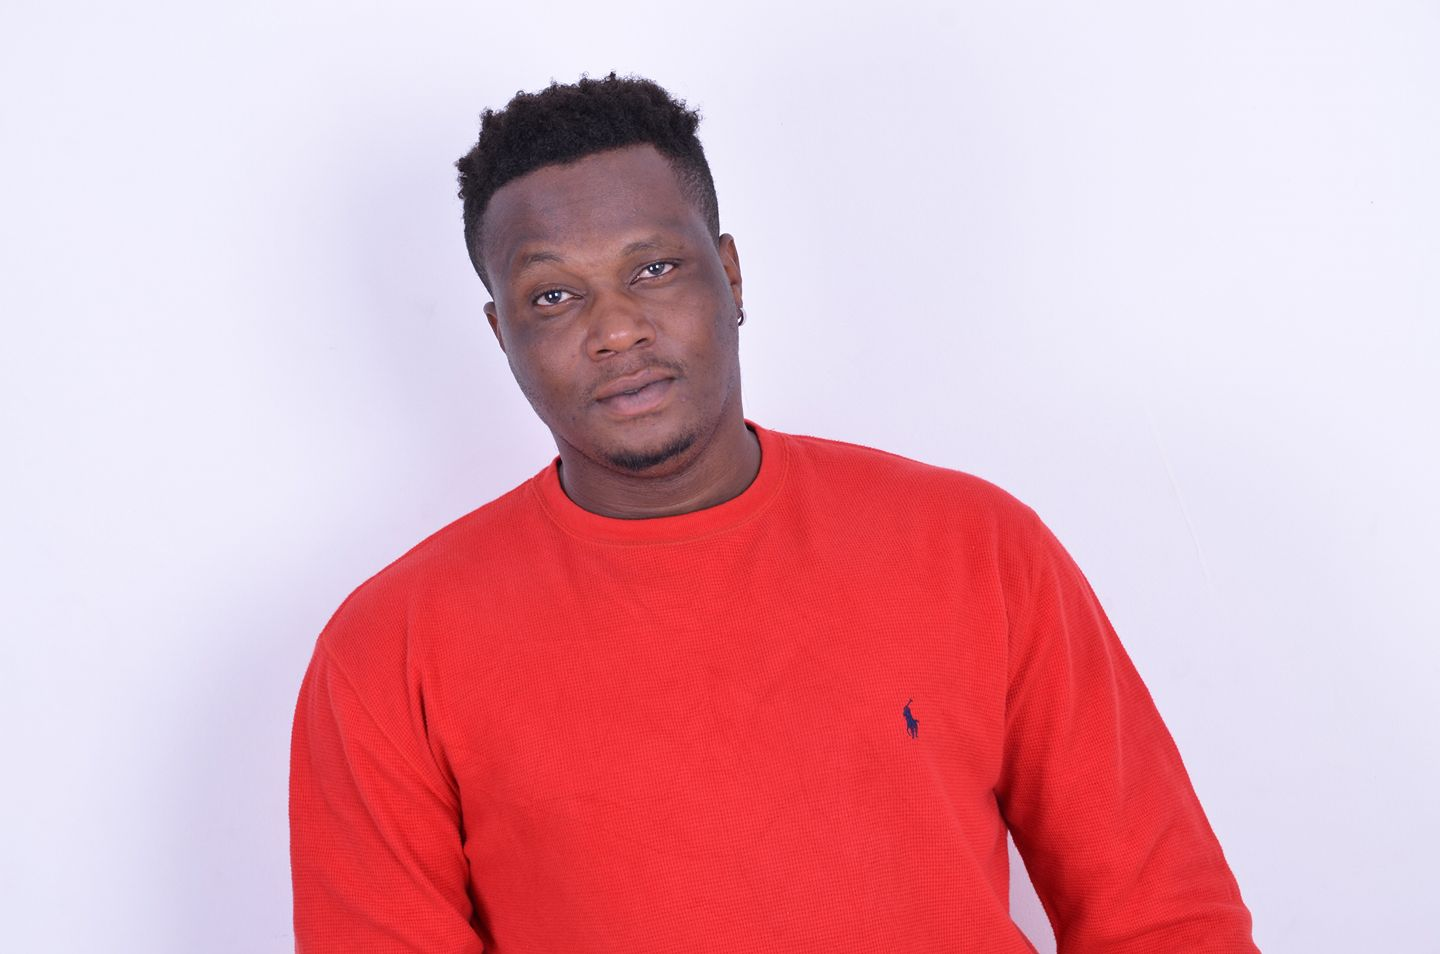 Mico The Best Joins Bebe Cool and Bflow to End TB in Africa